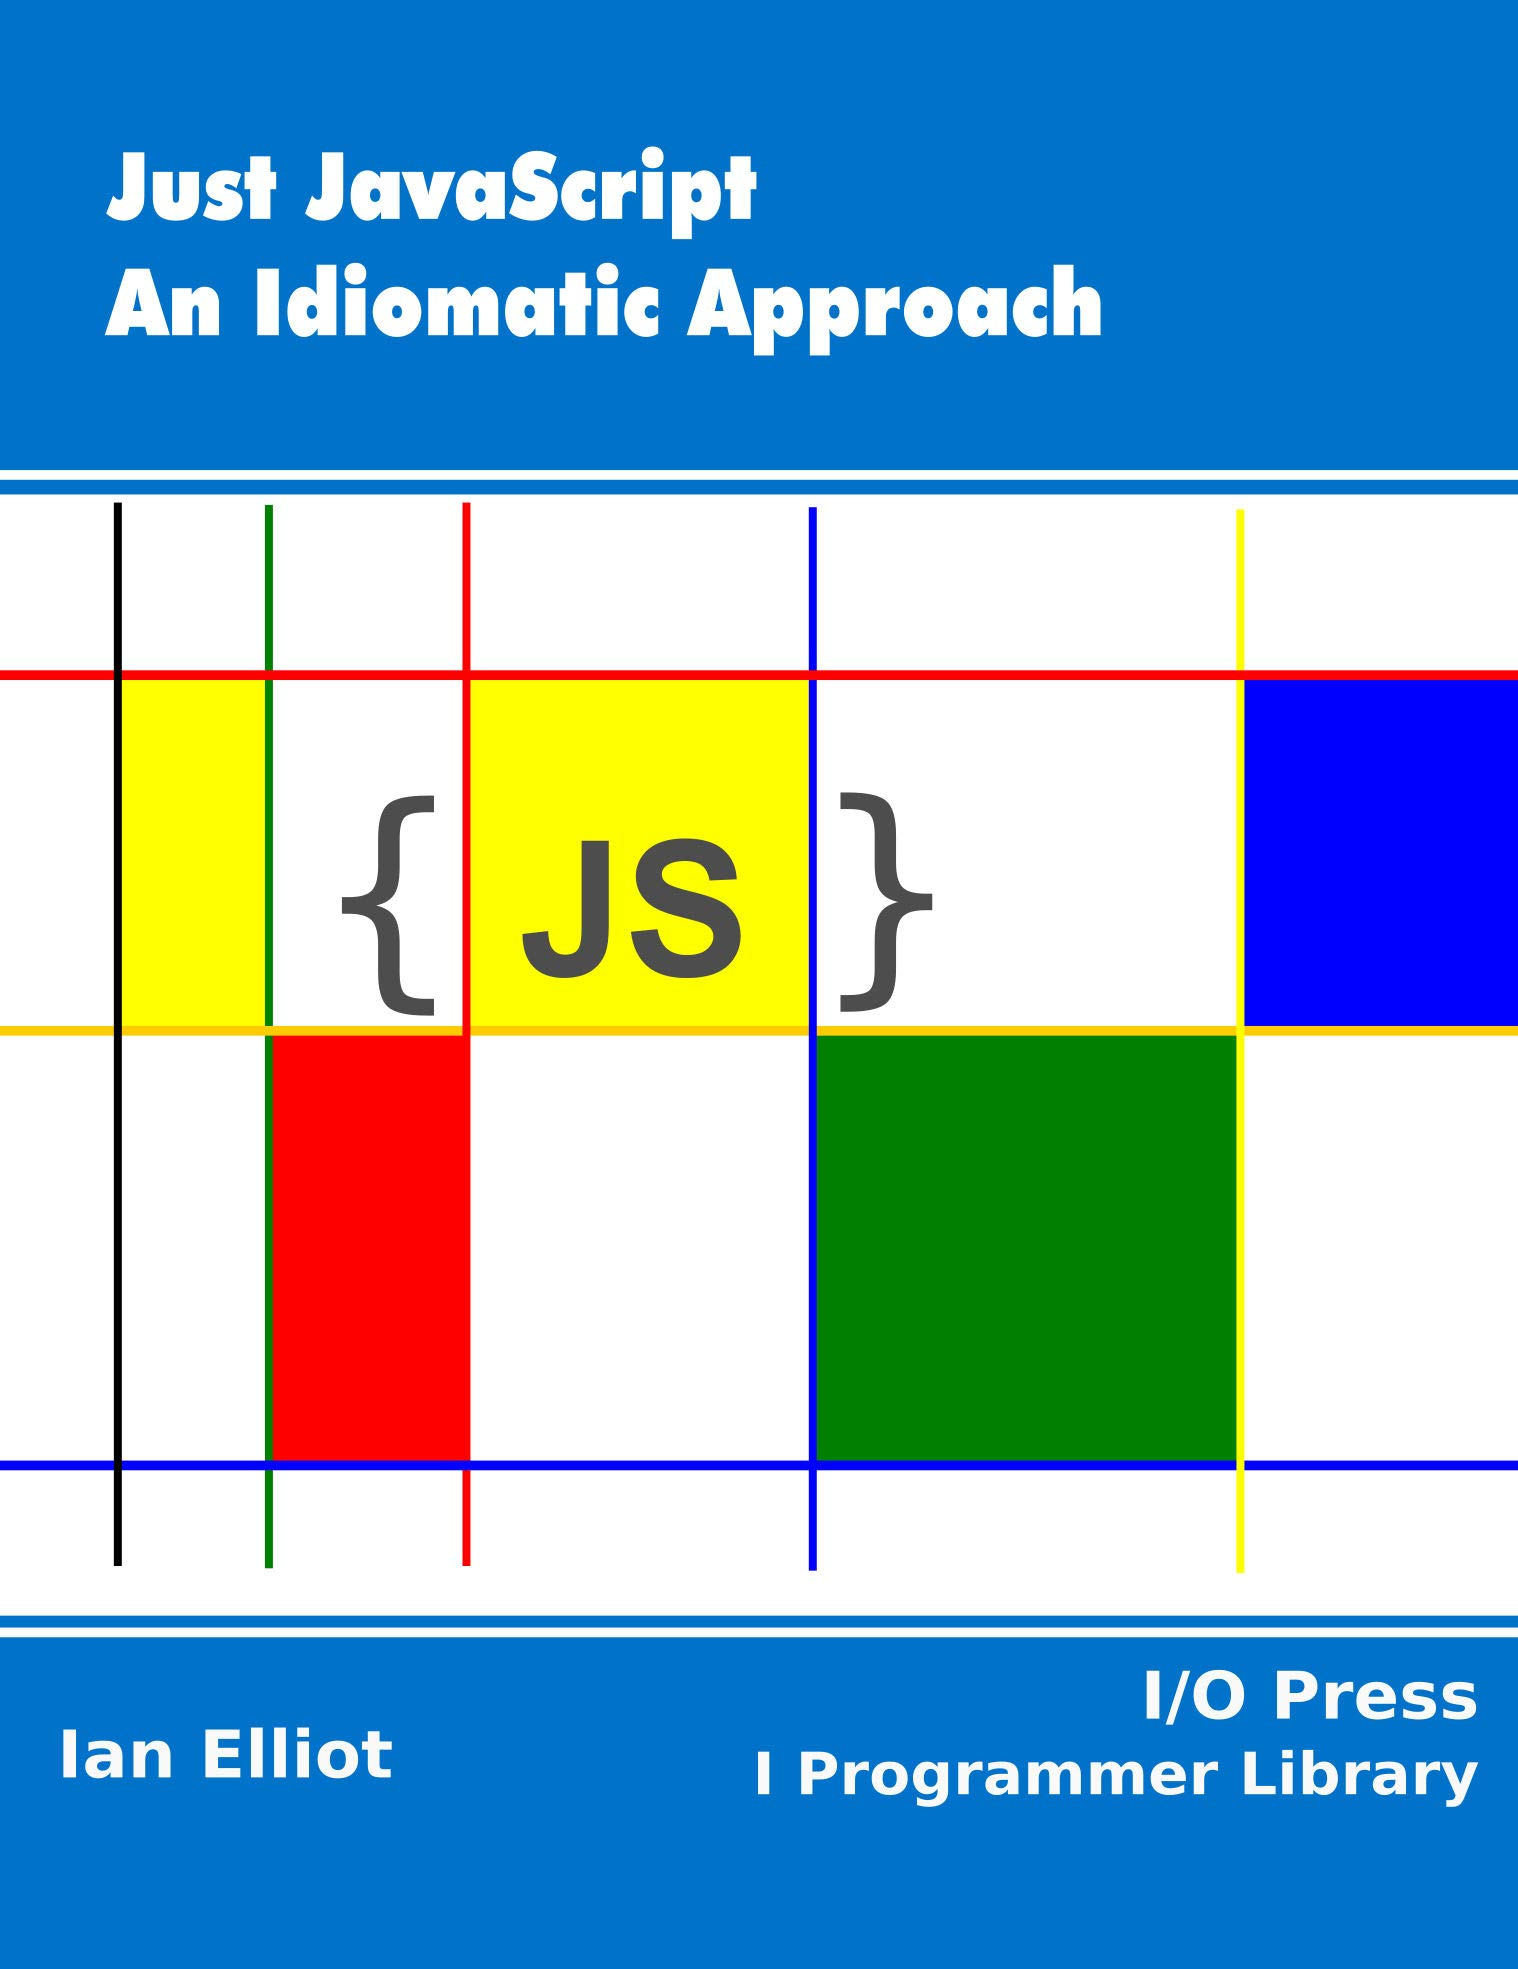 Just JavaScript: An Idiomatic Approach